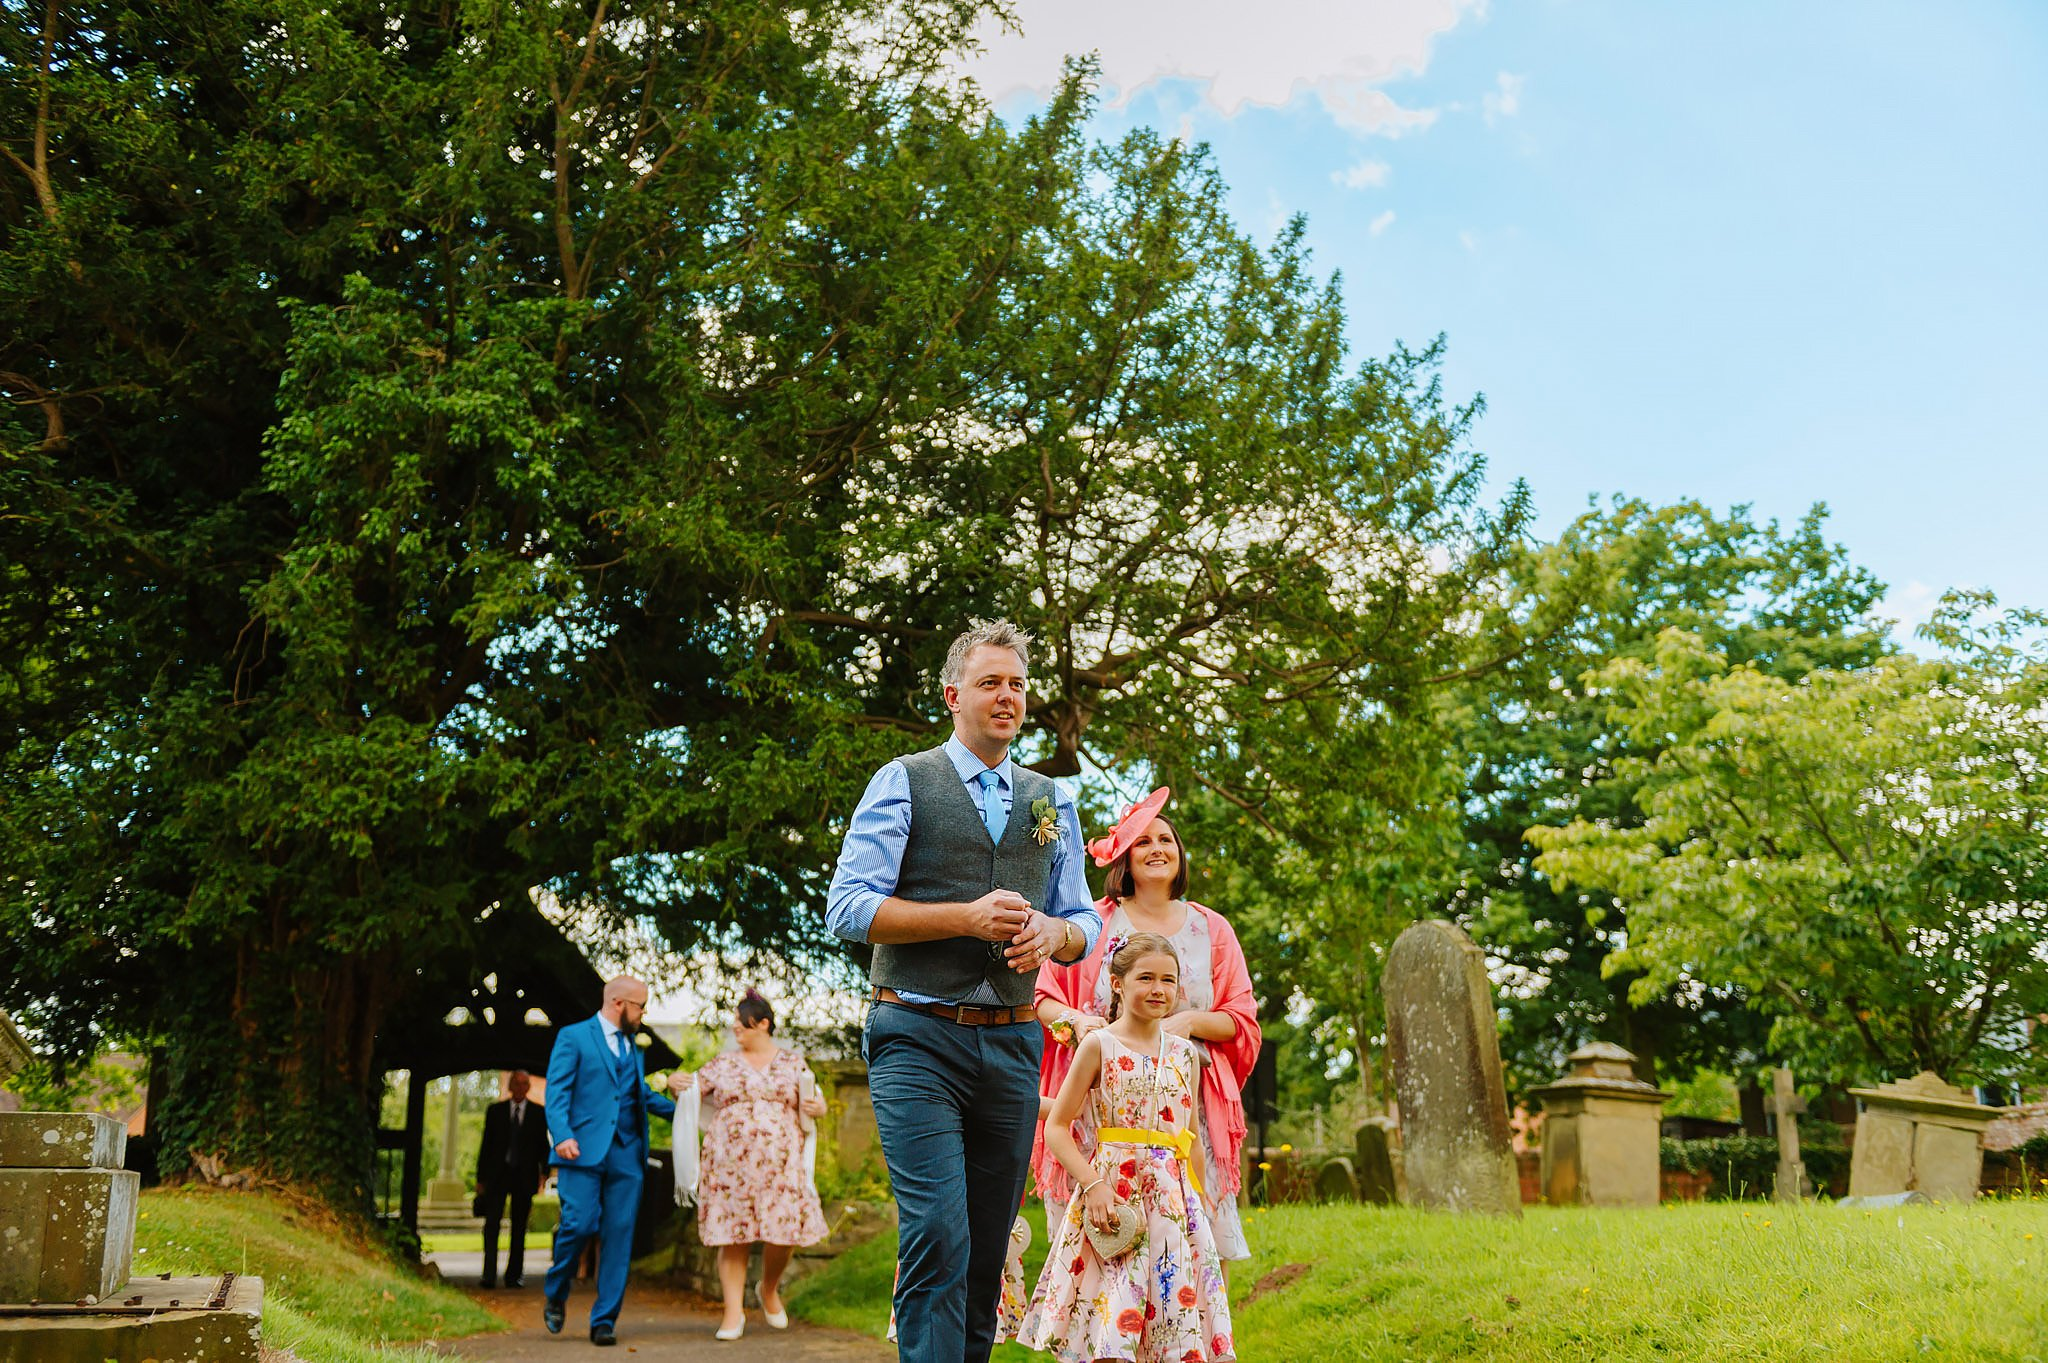 Wedding photography at Hellens Manor in Herefordshire, West Midlands | Shelley + Ian 15